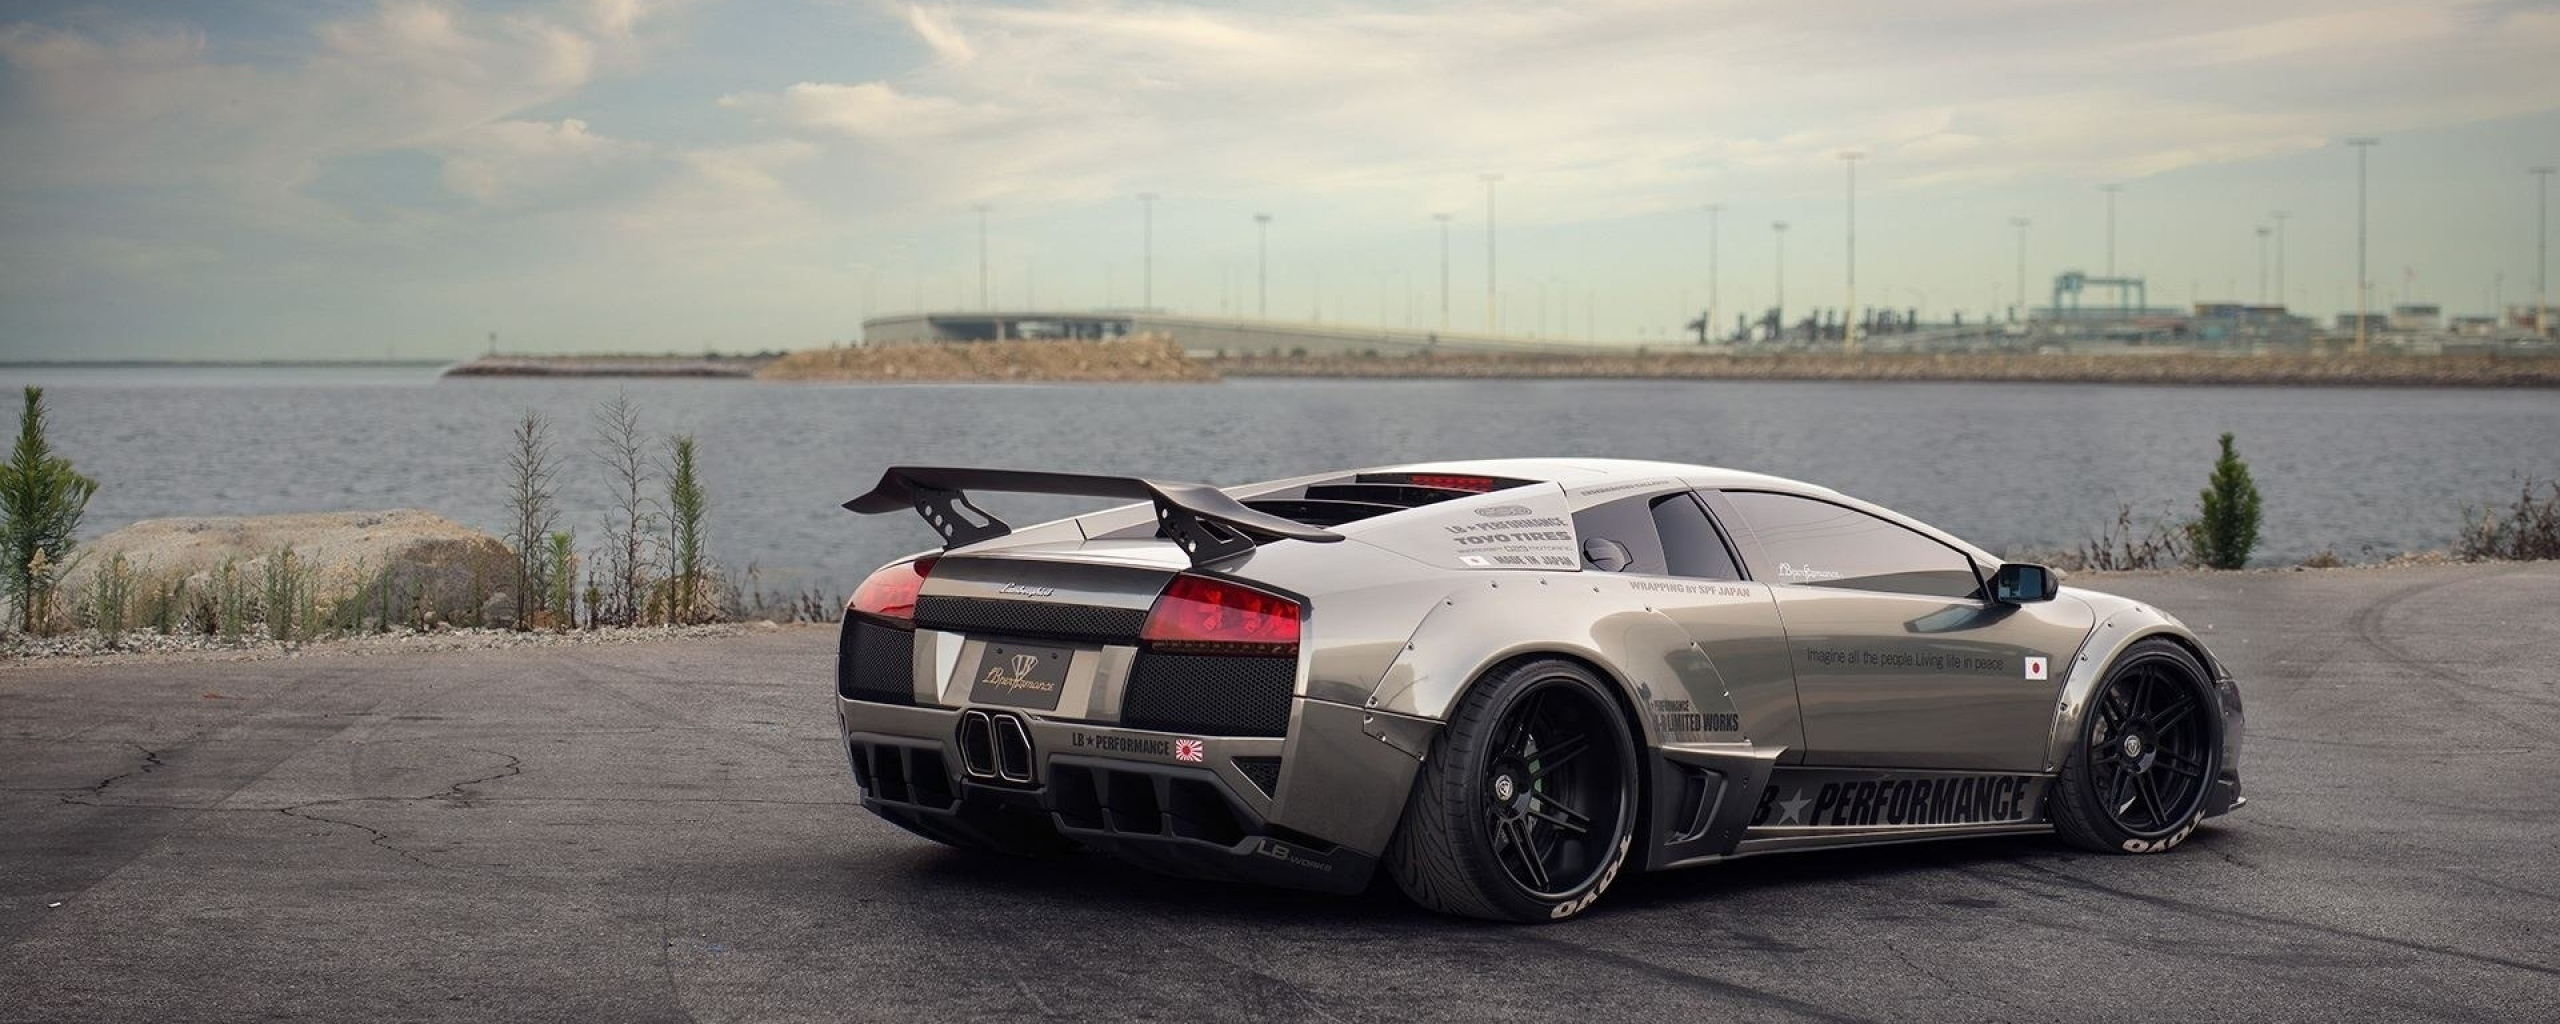 audi wallpaper for iphone 5 images